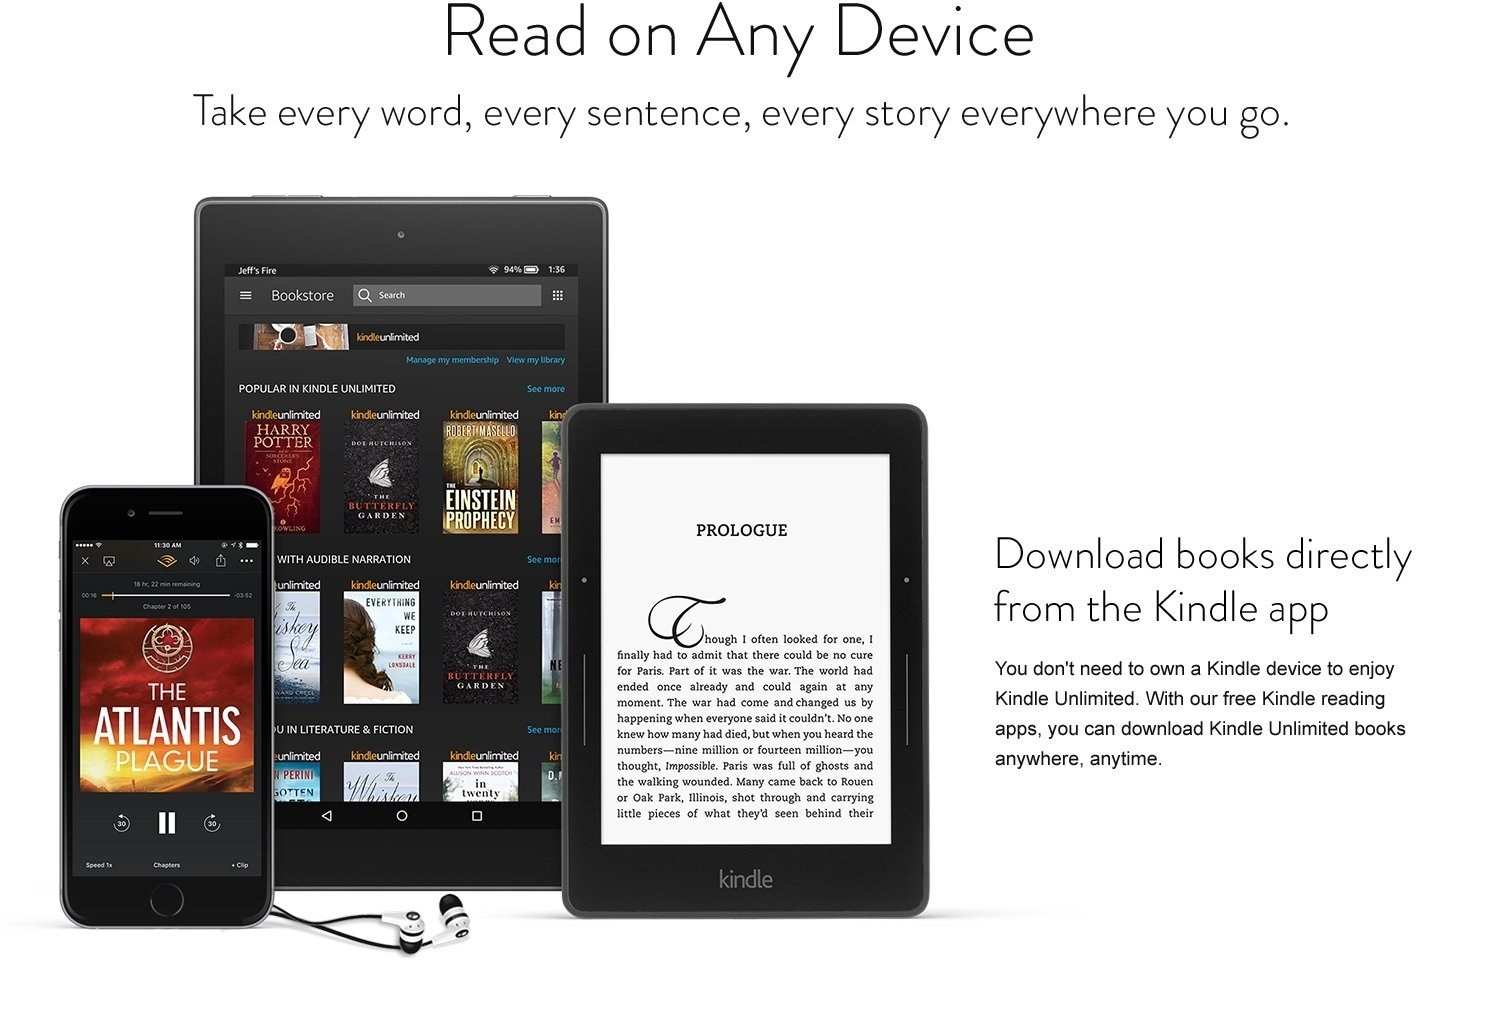 Infographic explaining you can download books to the Kindle app on your phone, tablet, or e-reader